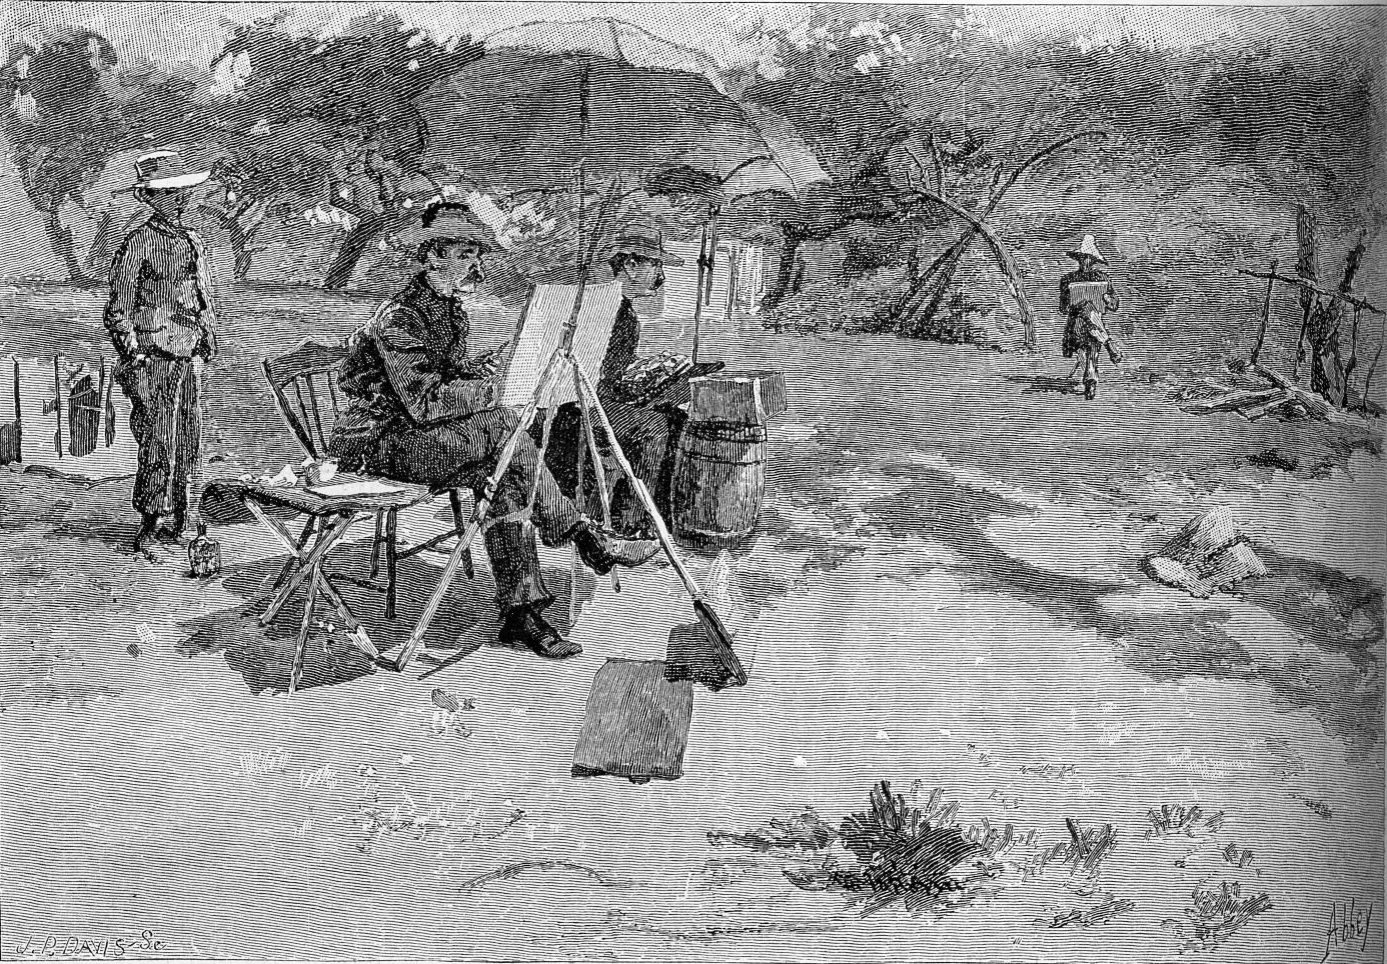 The Tile Club Sketching at Easthampton, Scribners, 1879